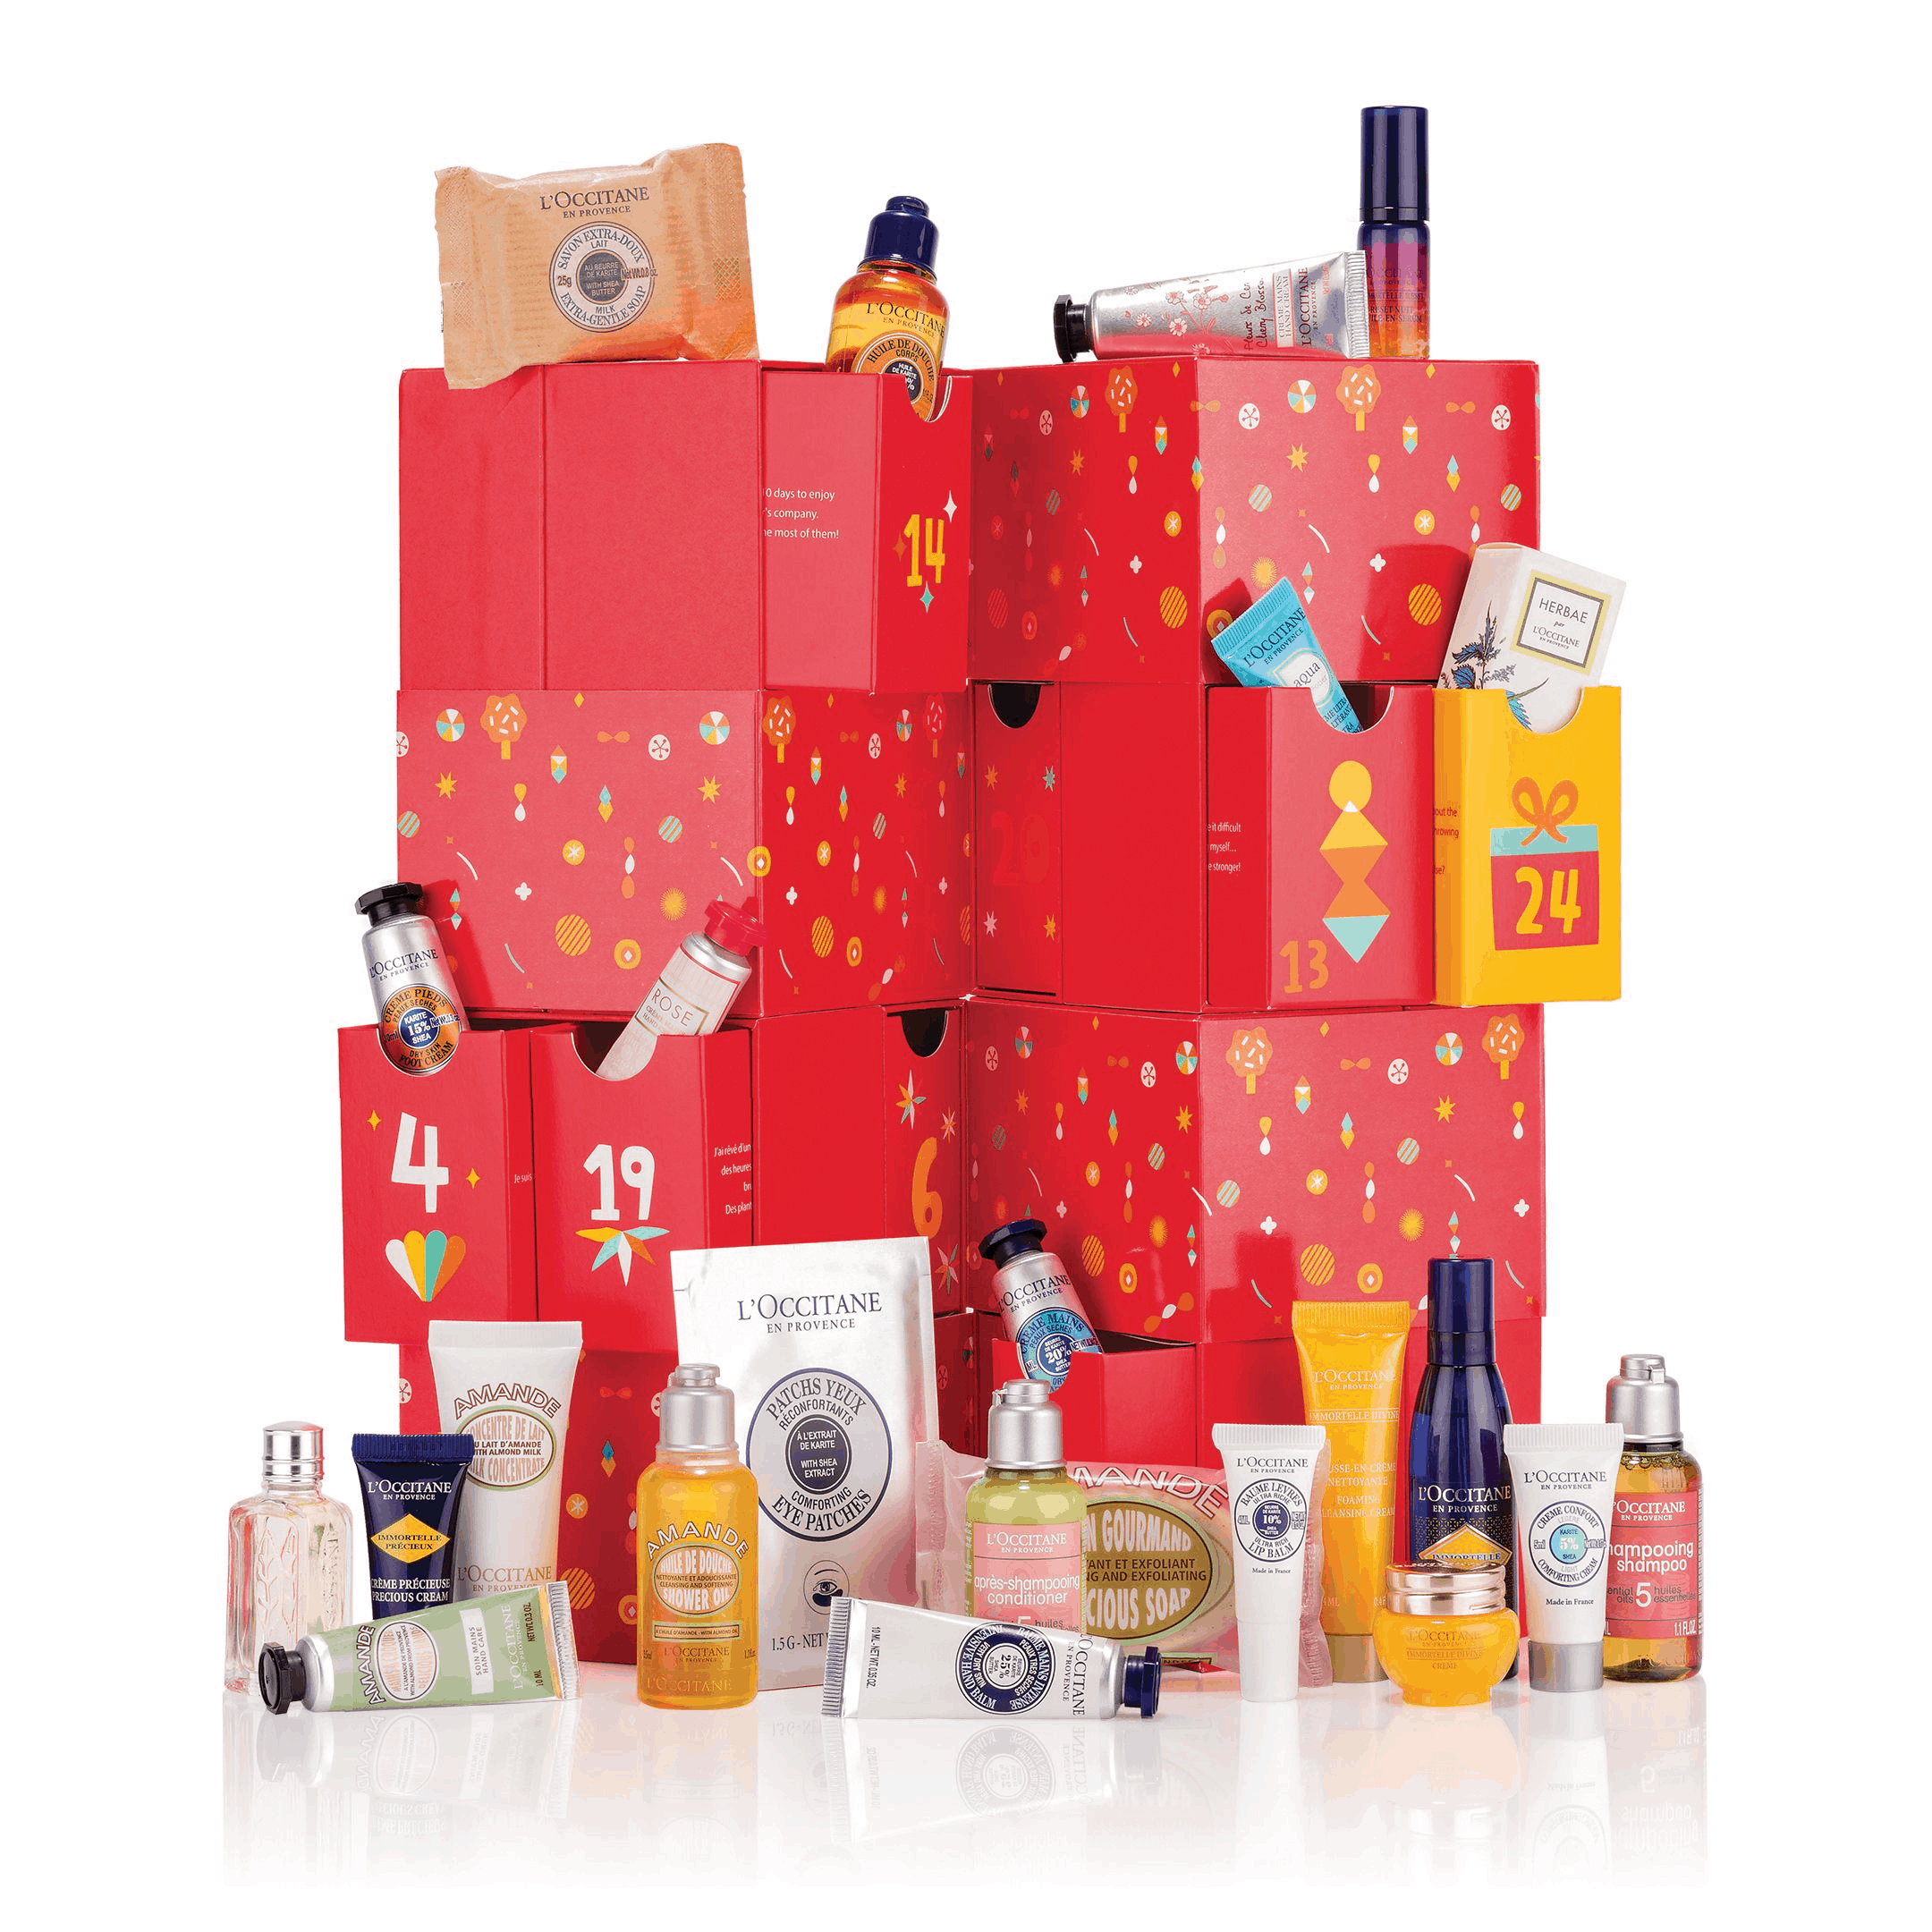 L'Occitane 2019 Classic Beauty Advent Calendar Coming Soon + Full Spoilers!